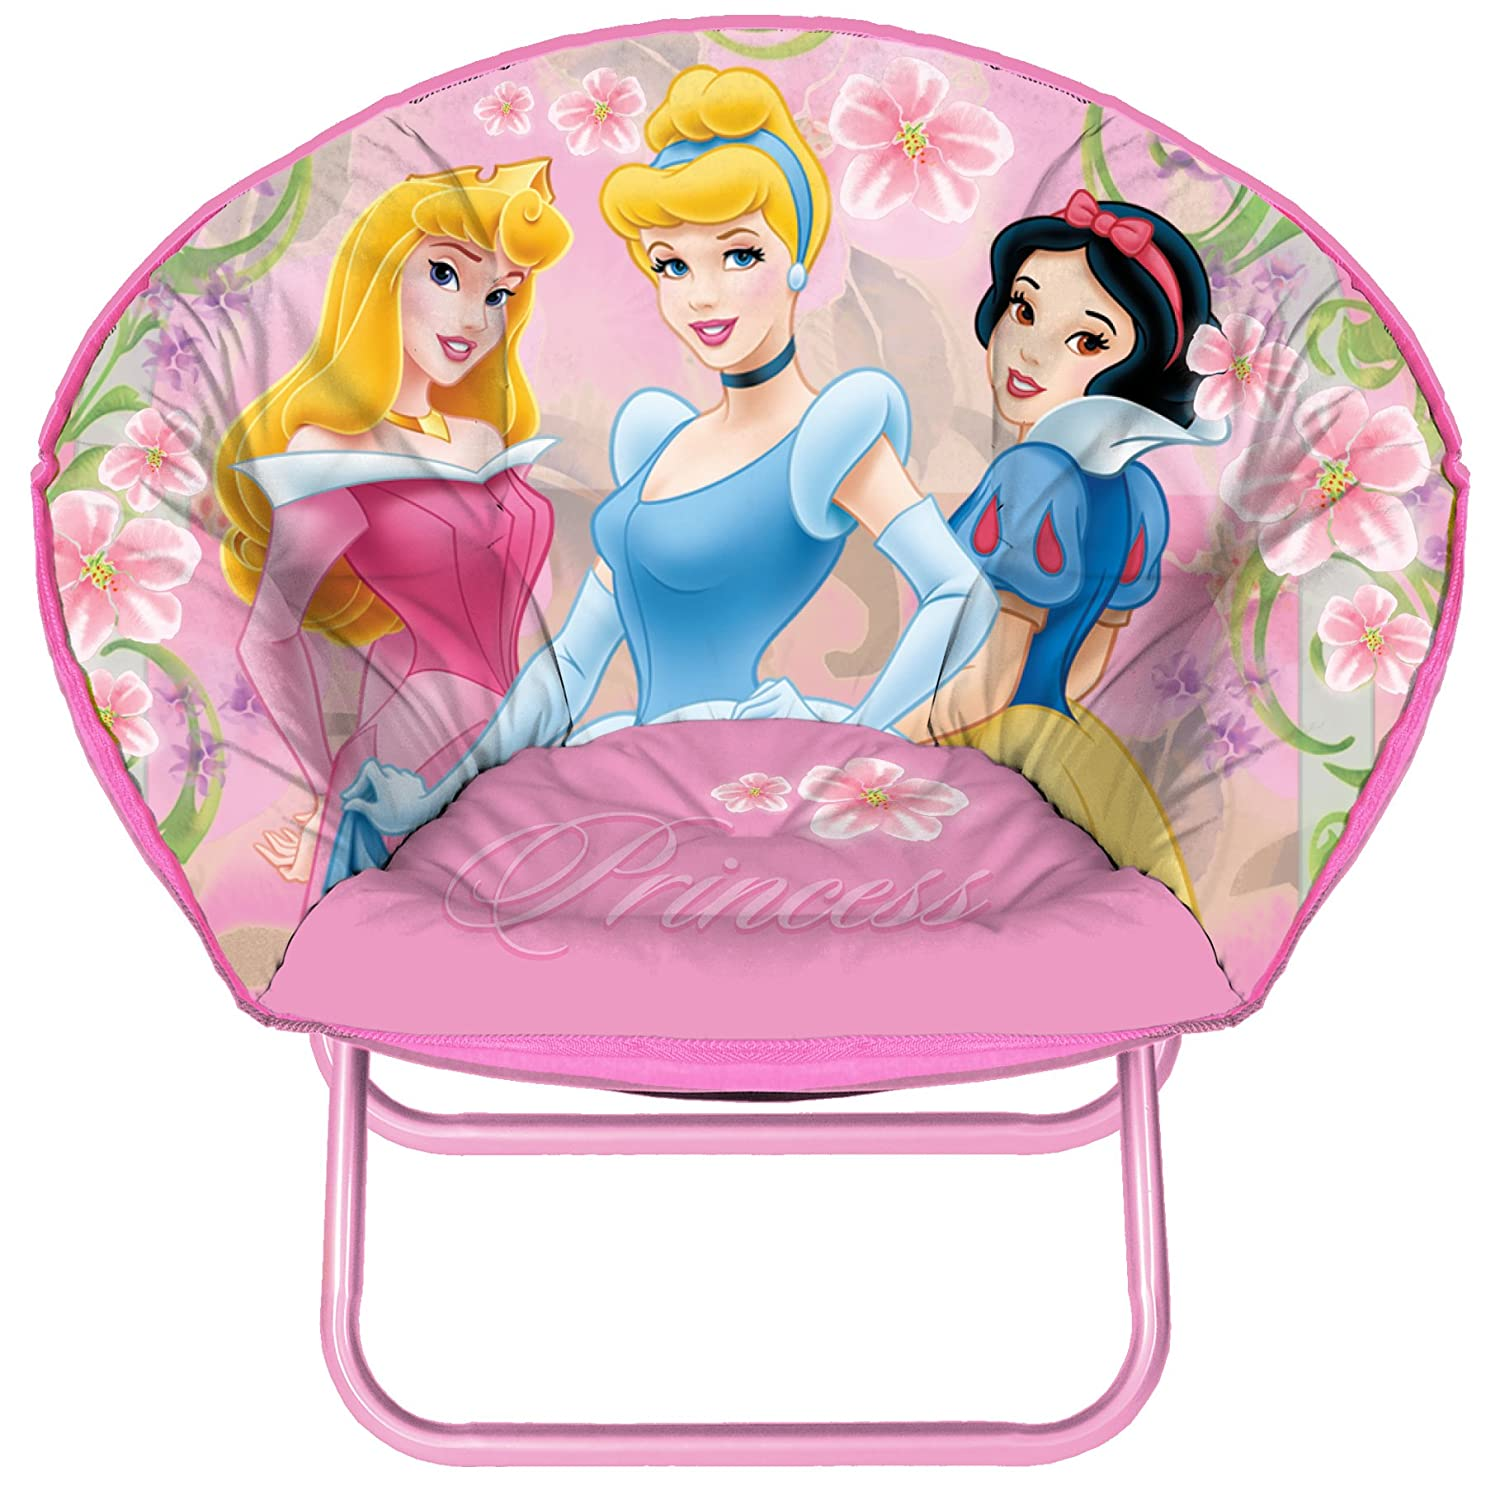 Kids Folding Disney Chair Round Saucer Play Princess Seat